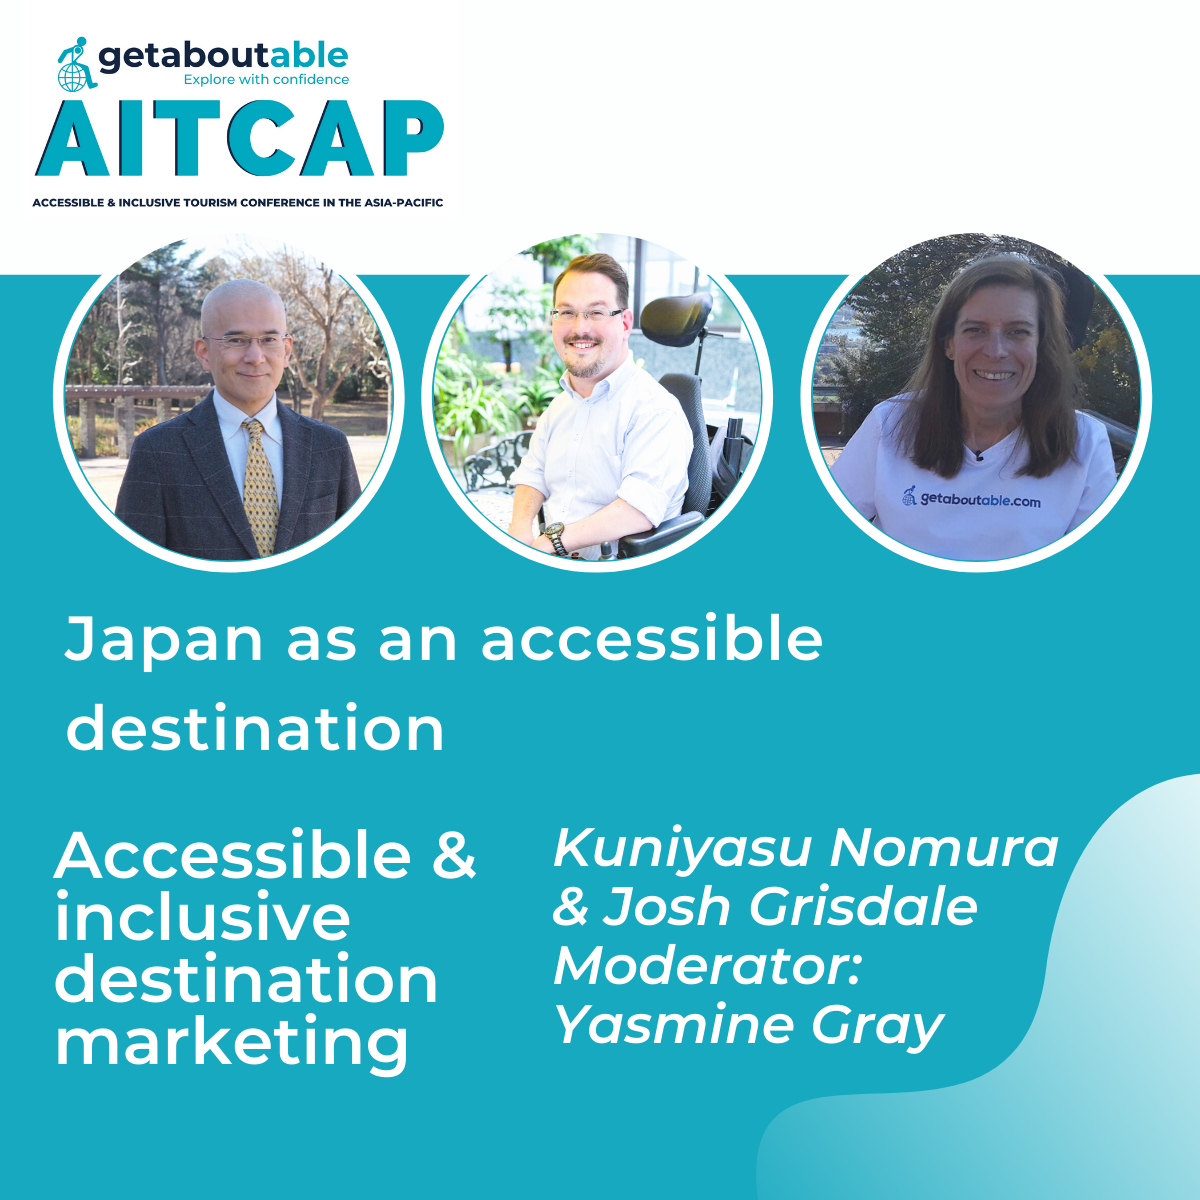 Panel discussion Japan as an accessible destination AITCAP Kuniyasu Nomura Josh Grisdale Yasmine Gray